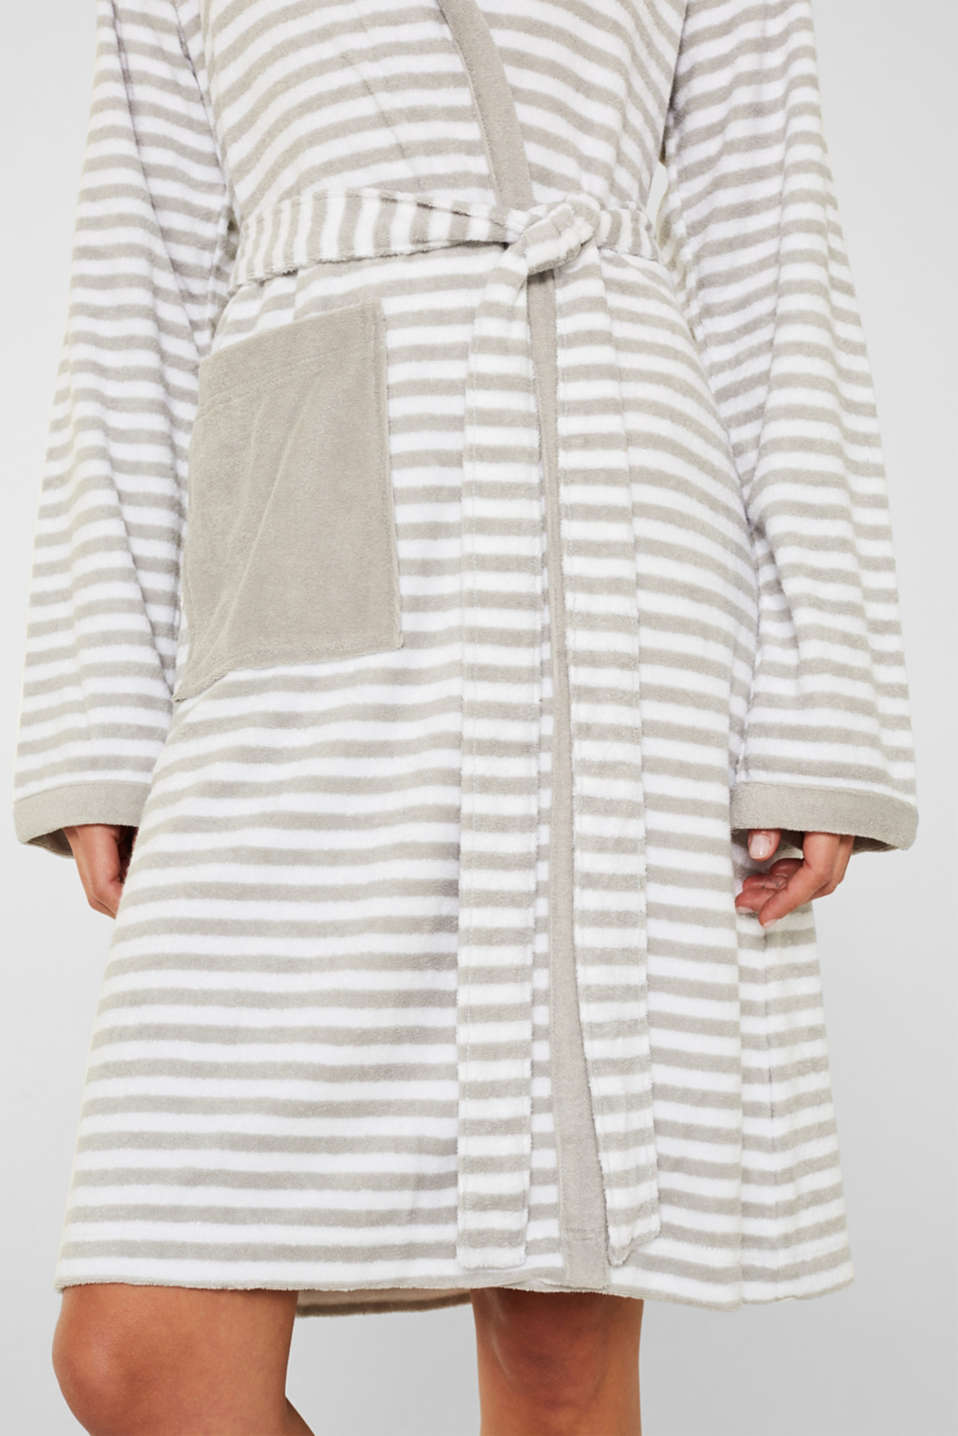 Terry cloth bathrobe with stripes, STONE, detail image number 2